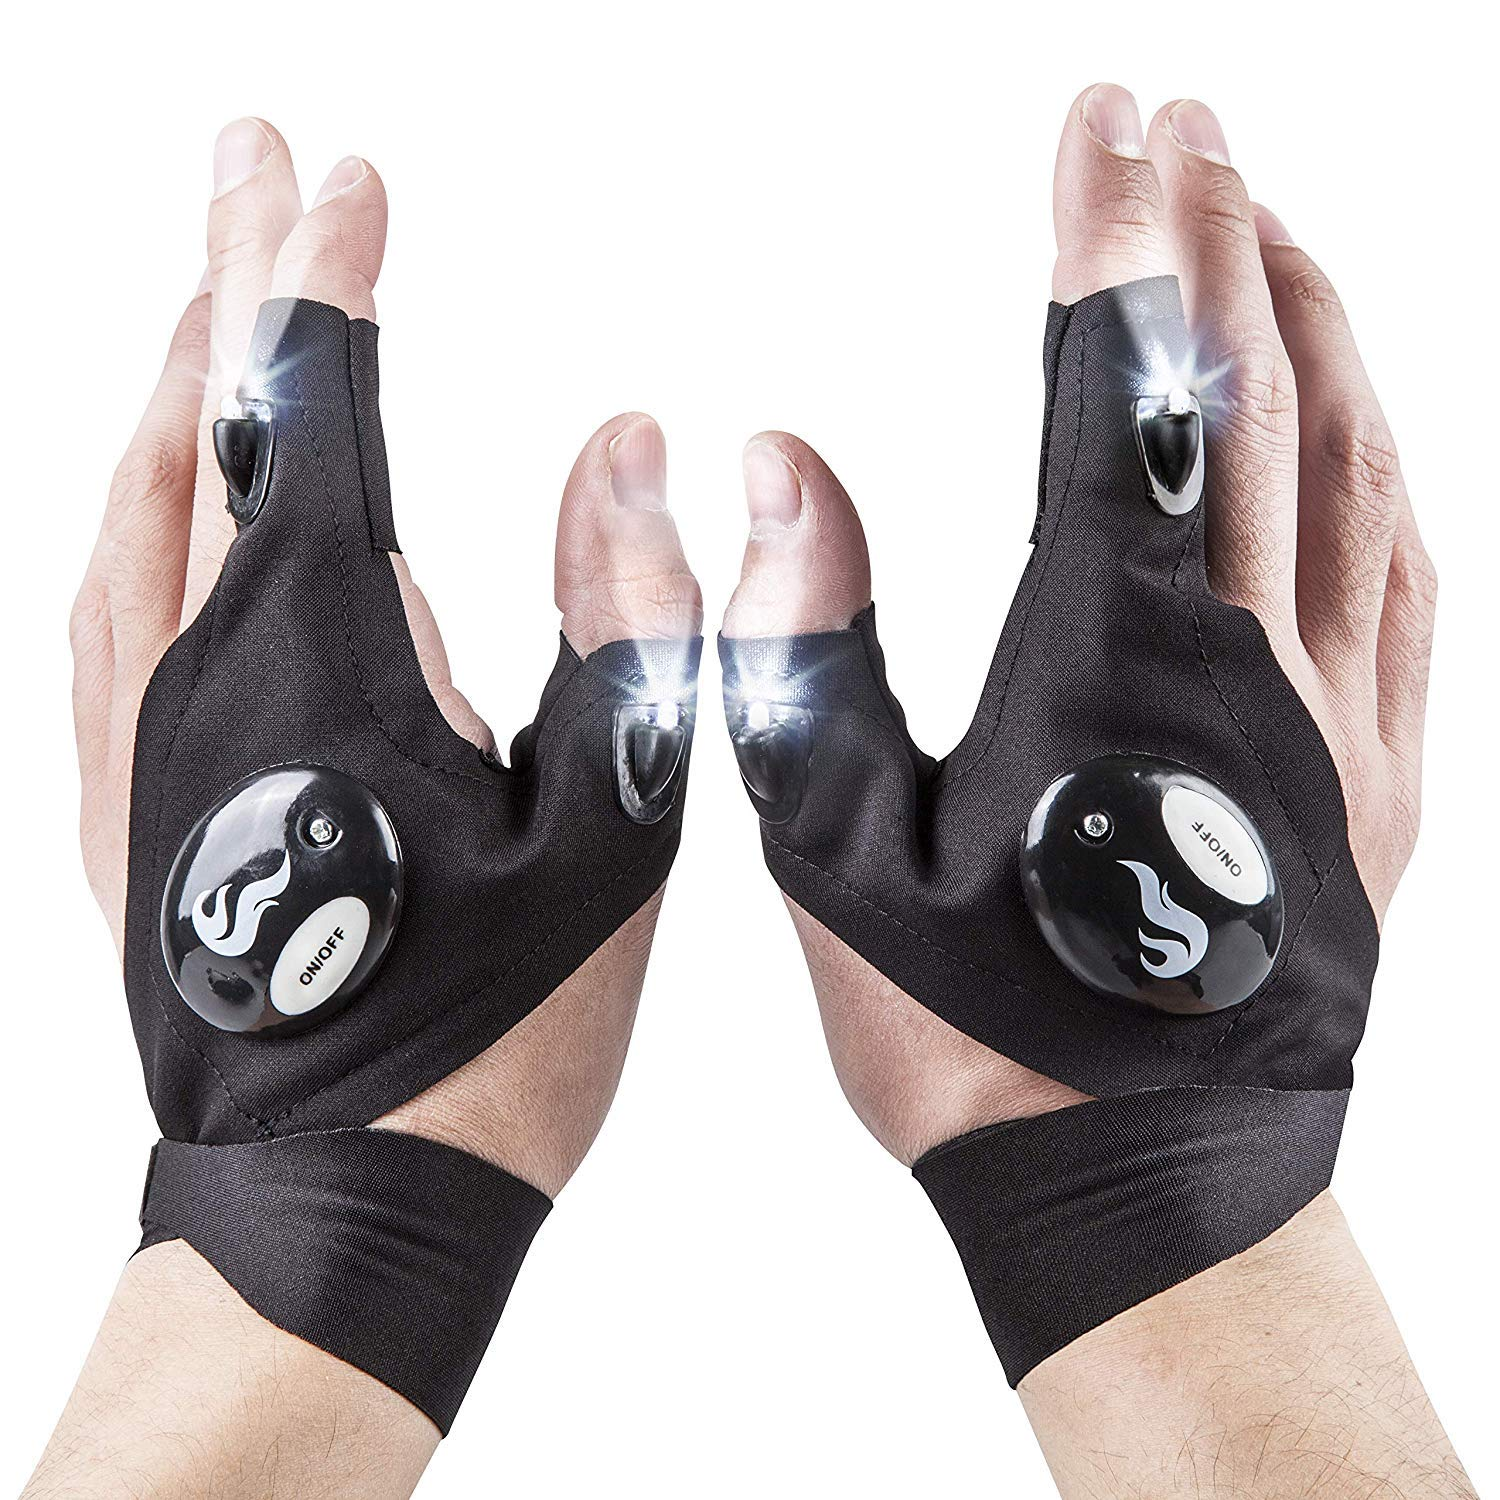 Flashlight Gloves - Tactical LED Light Gloves for Mechanics, Computer & Car Repair, Outdoor | Waterproof, Lightweight & Flexible | Perfect for Camping, Night Running, Fishing, Cycling | Handyman Gifts by DANGSHAN